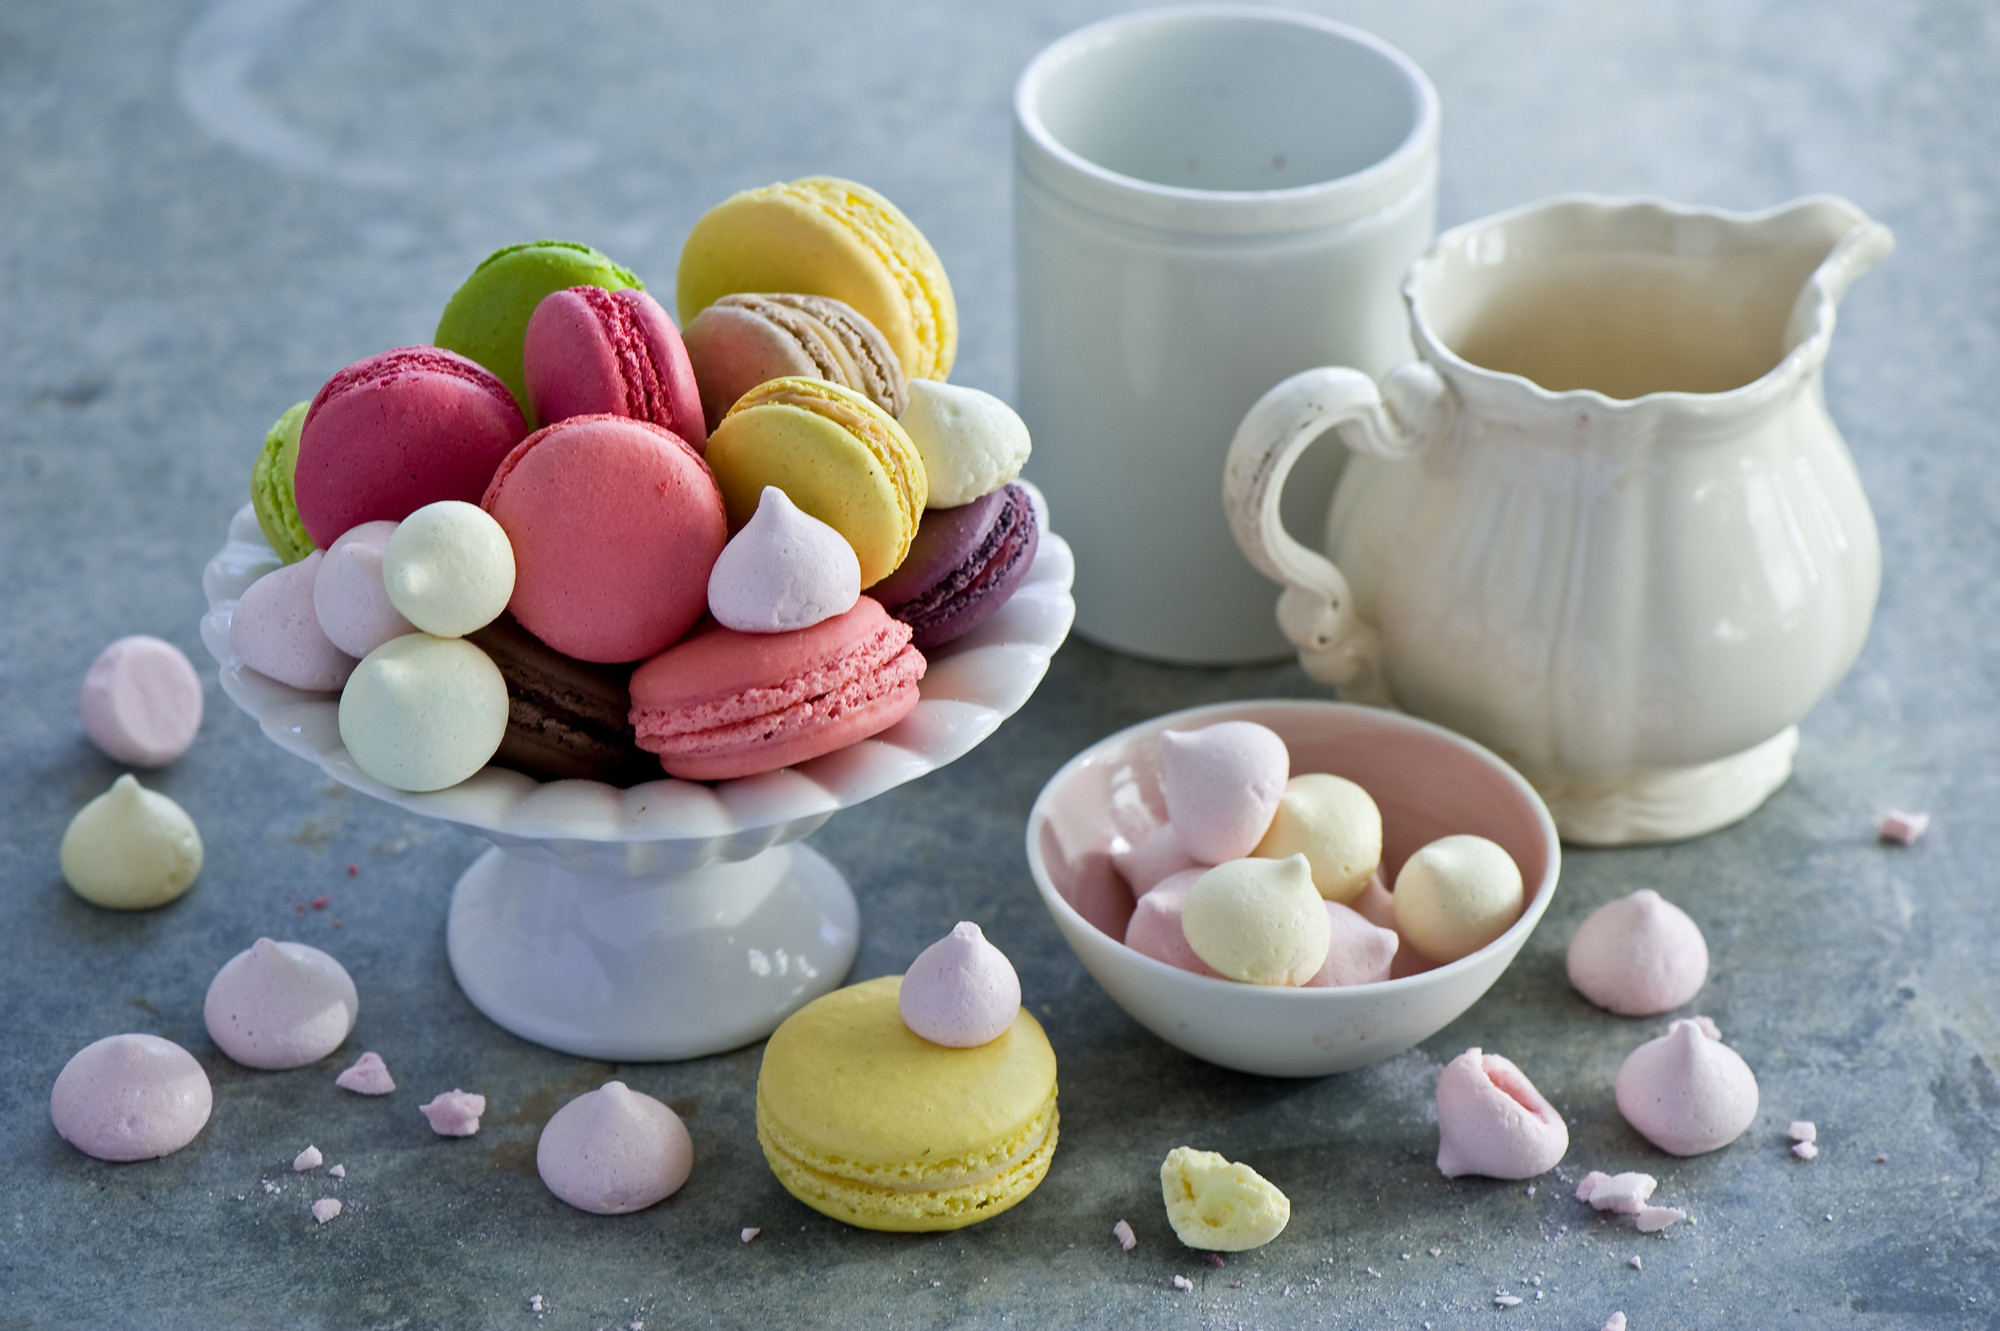 826093-top-french-macaroons-wallpaper-2000x1331-for-phones.jpg